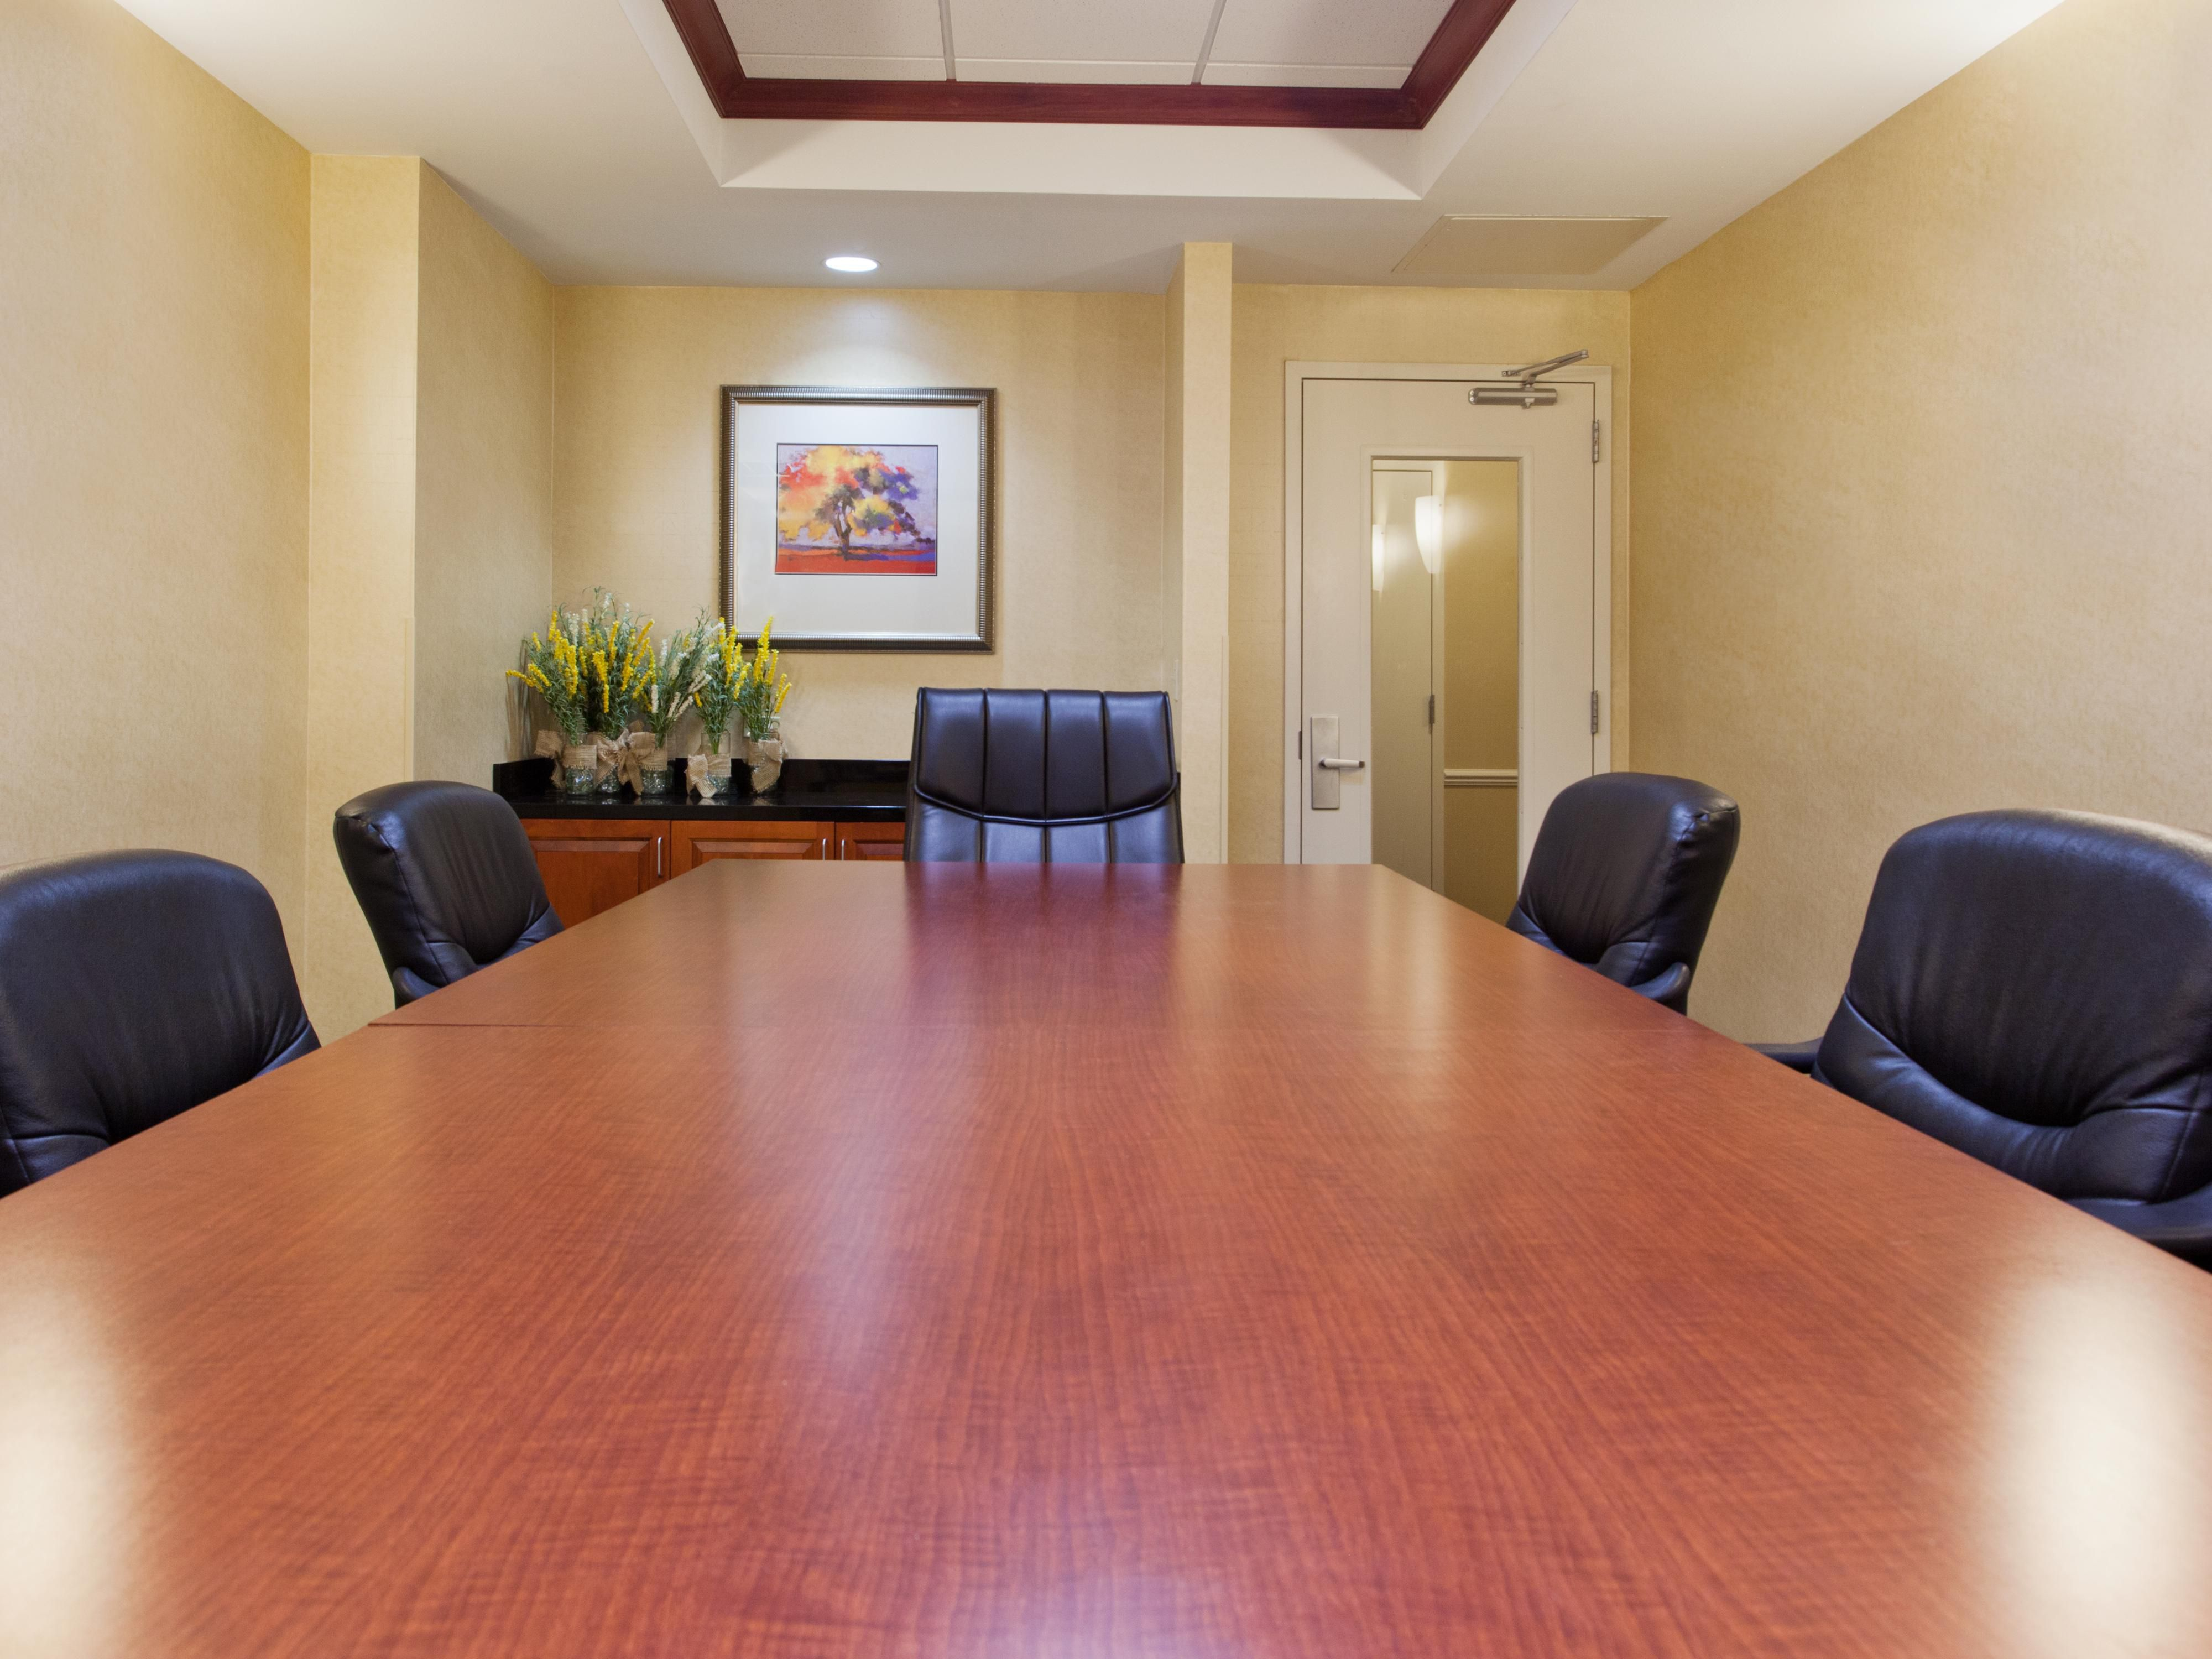 Make use of our 10 person Boadroom meeting space